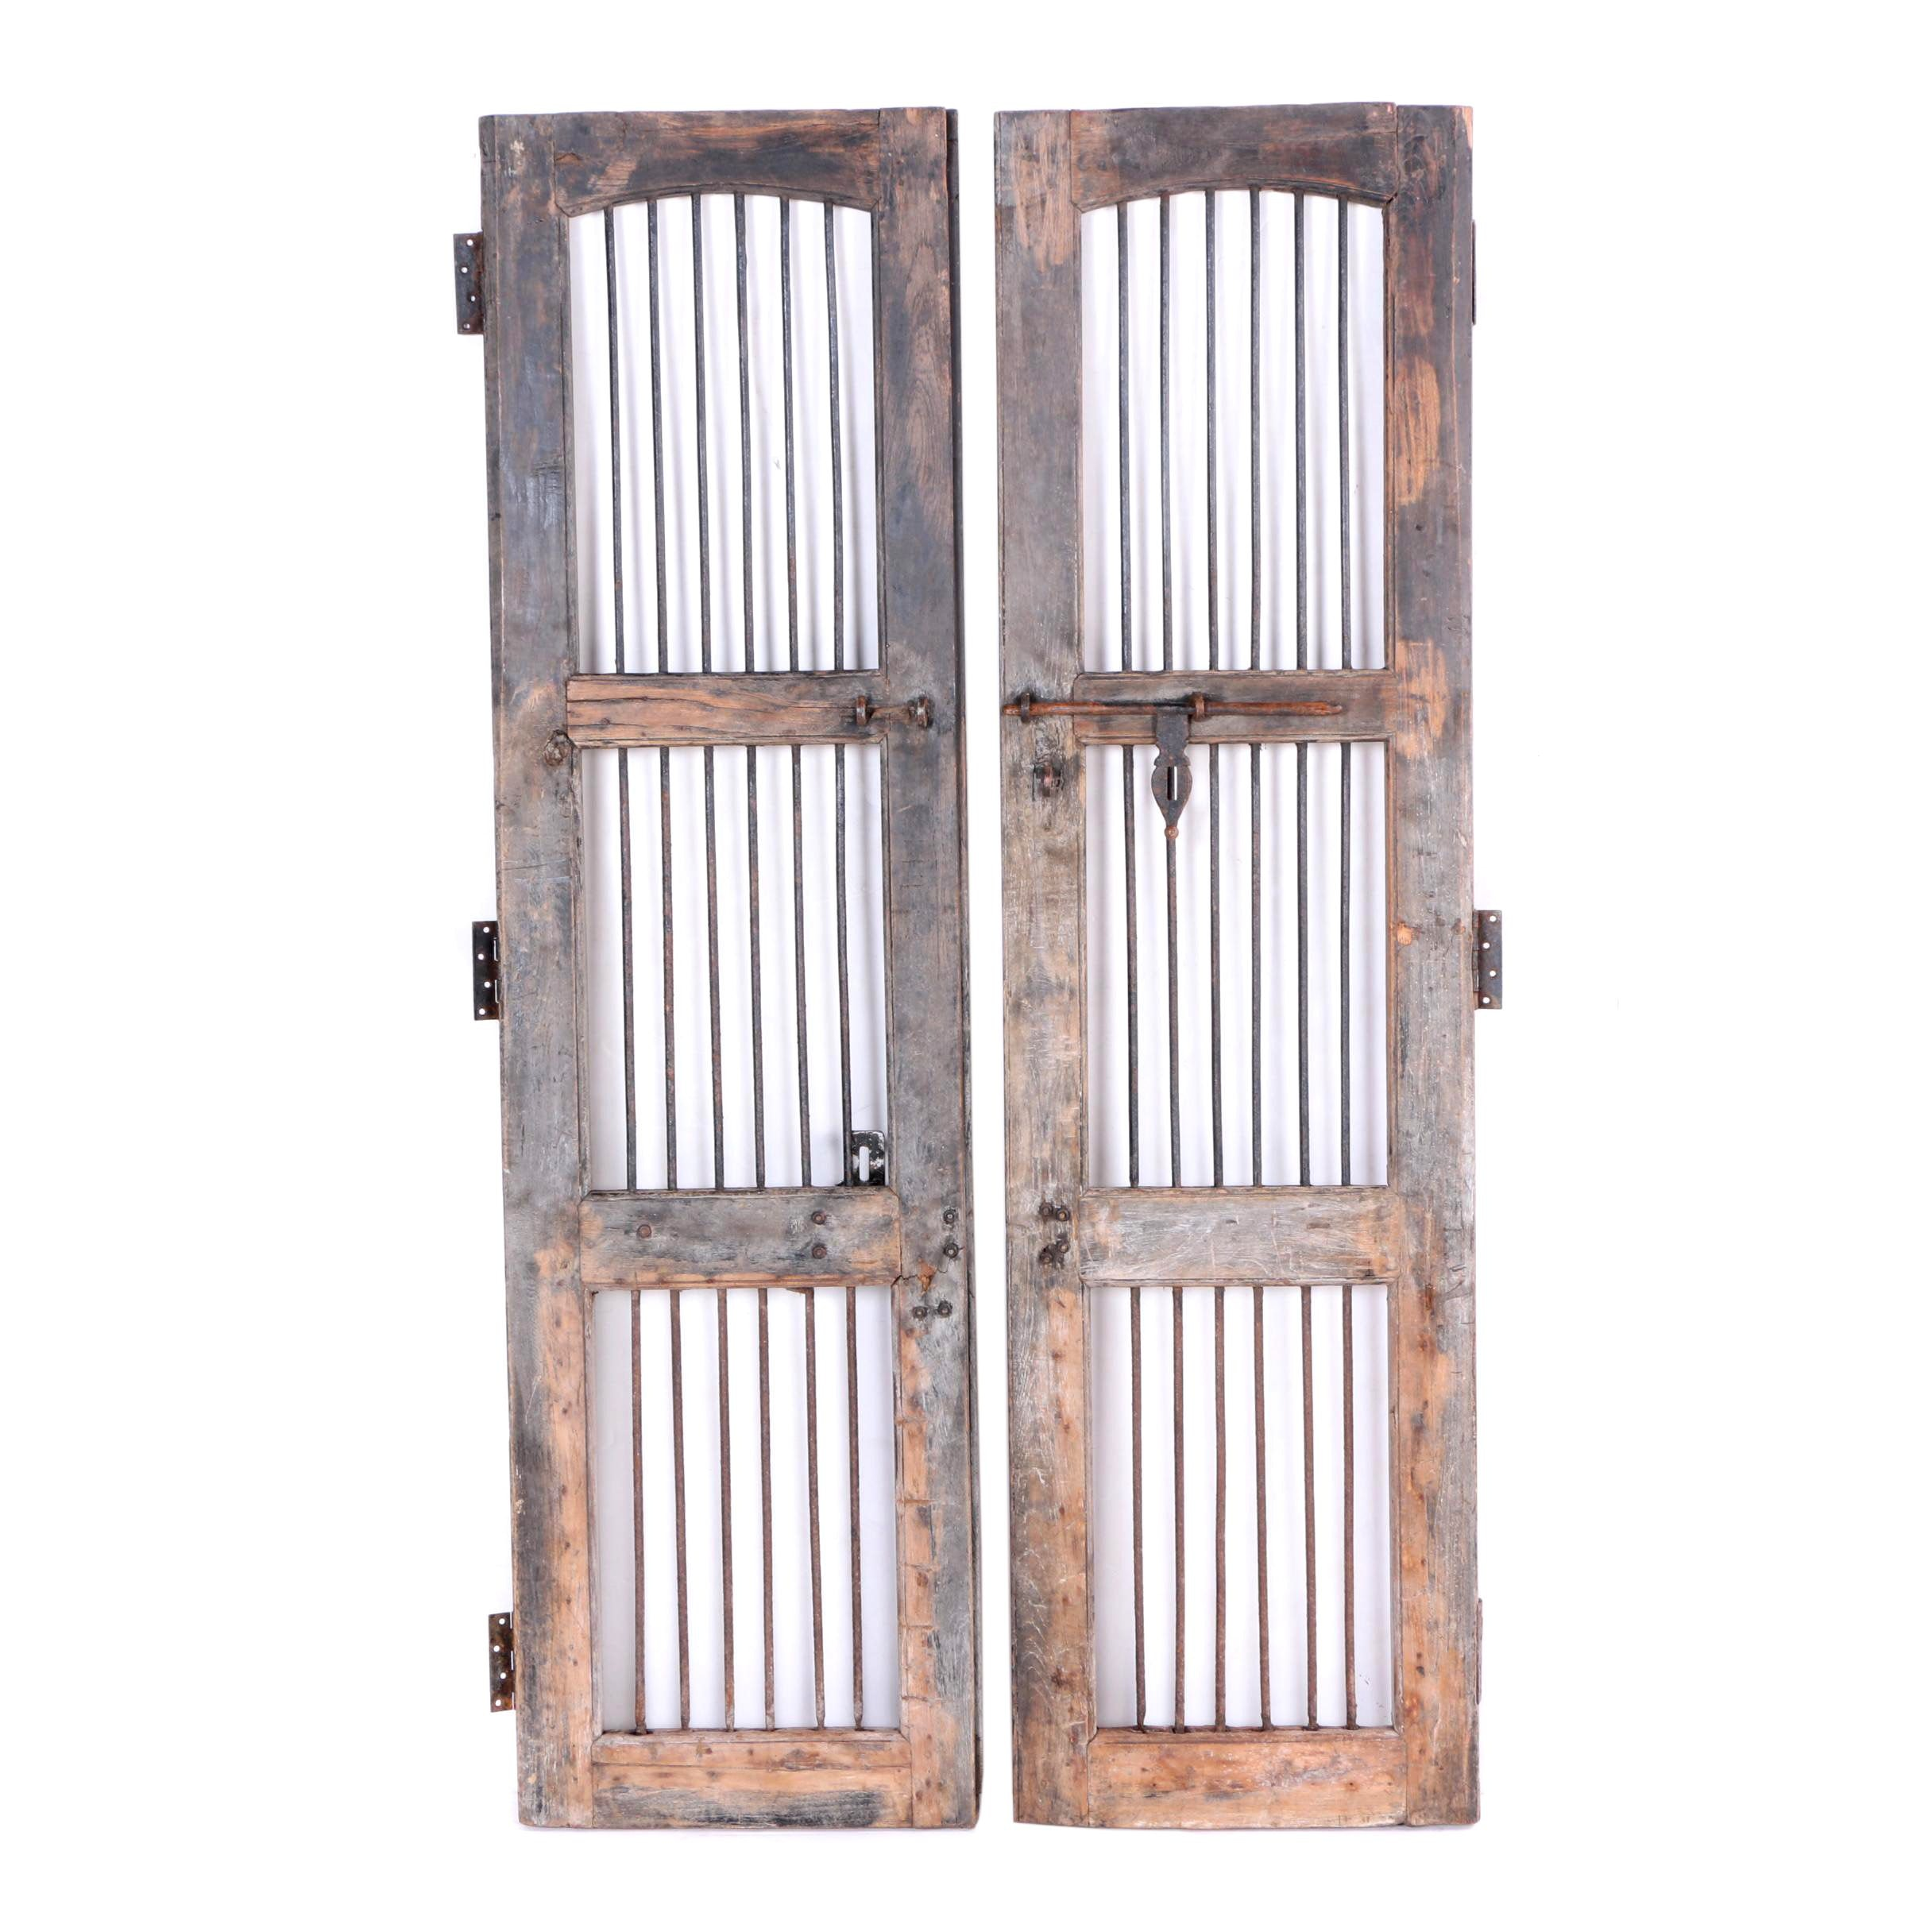 Pair of Antique Salvaged Doors With Rusted Bars